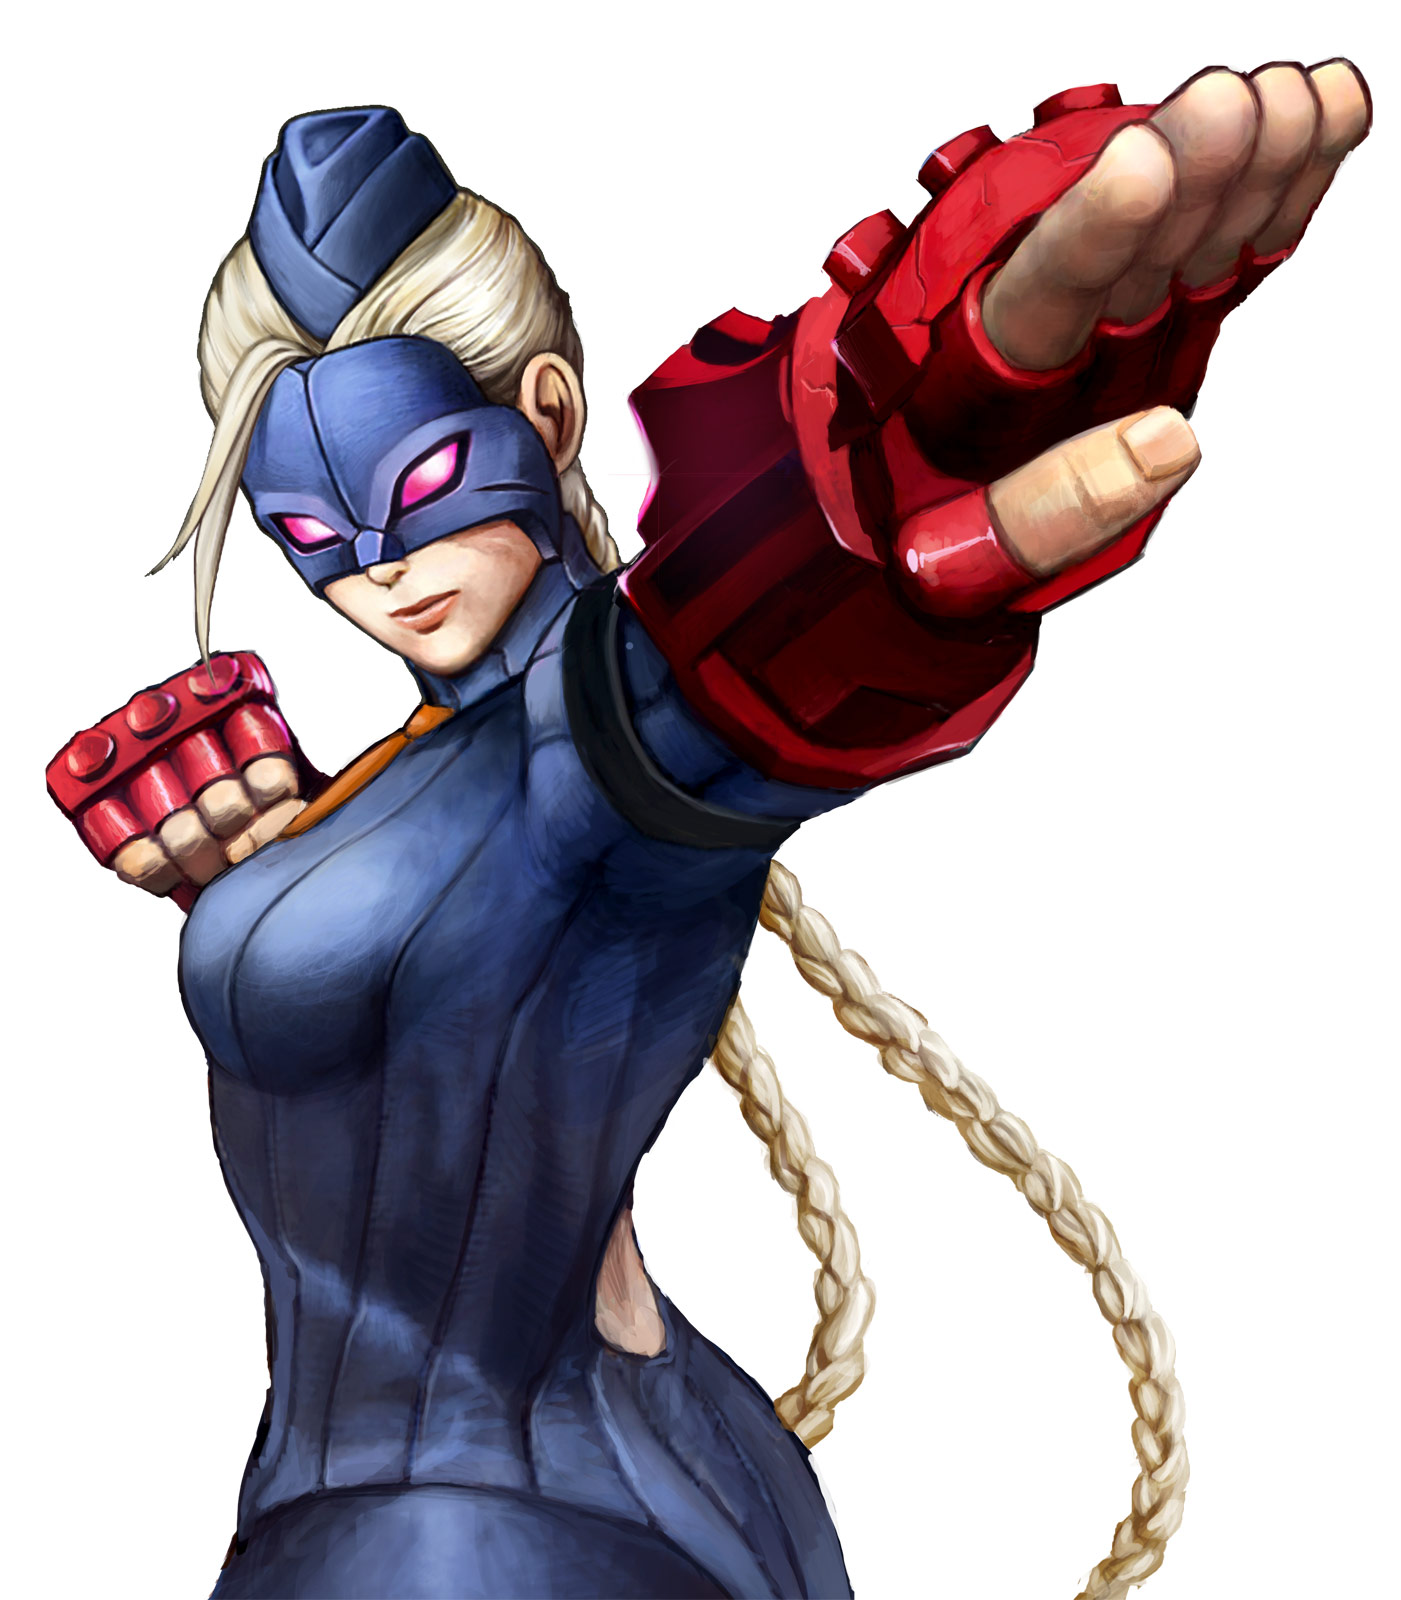 Decapre artwork and screen shots for Ultra Street Fighter 4 image #2